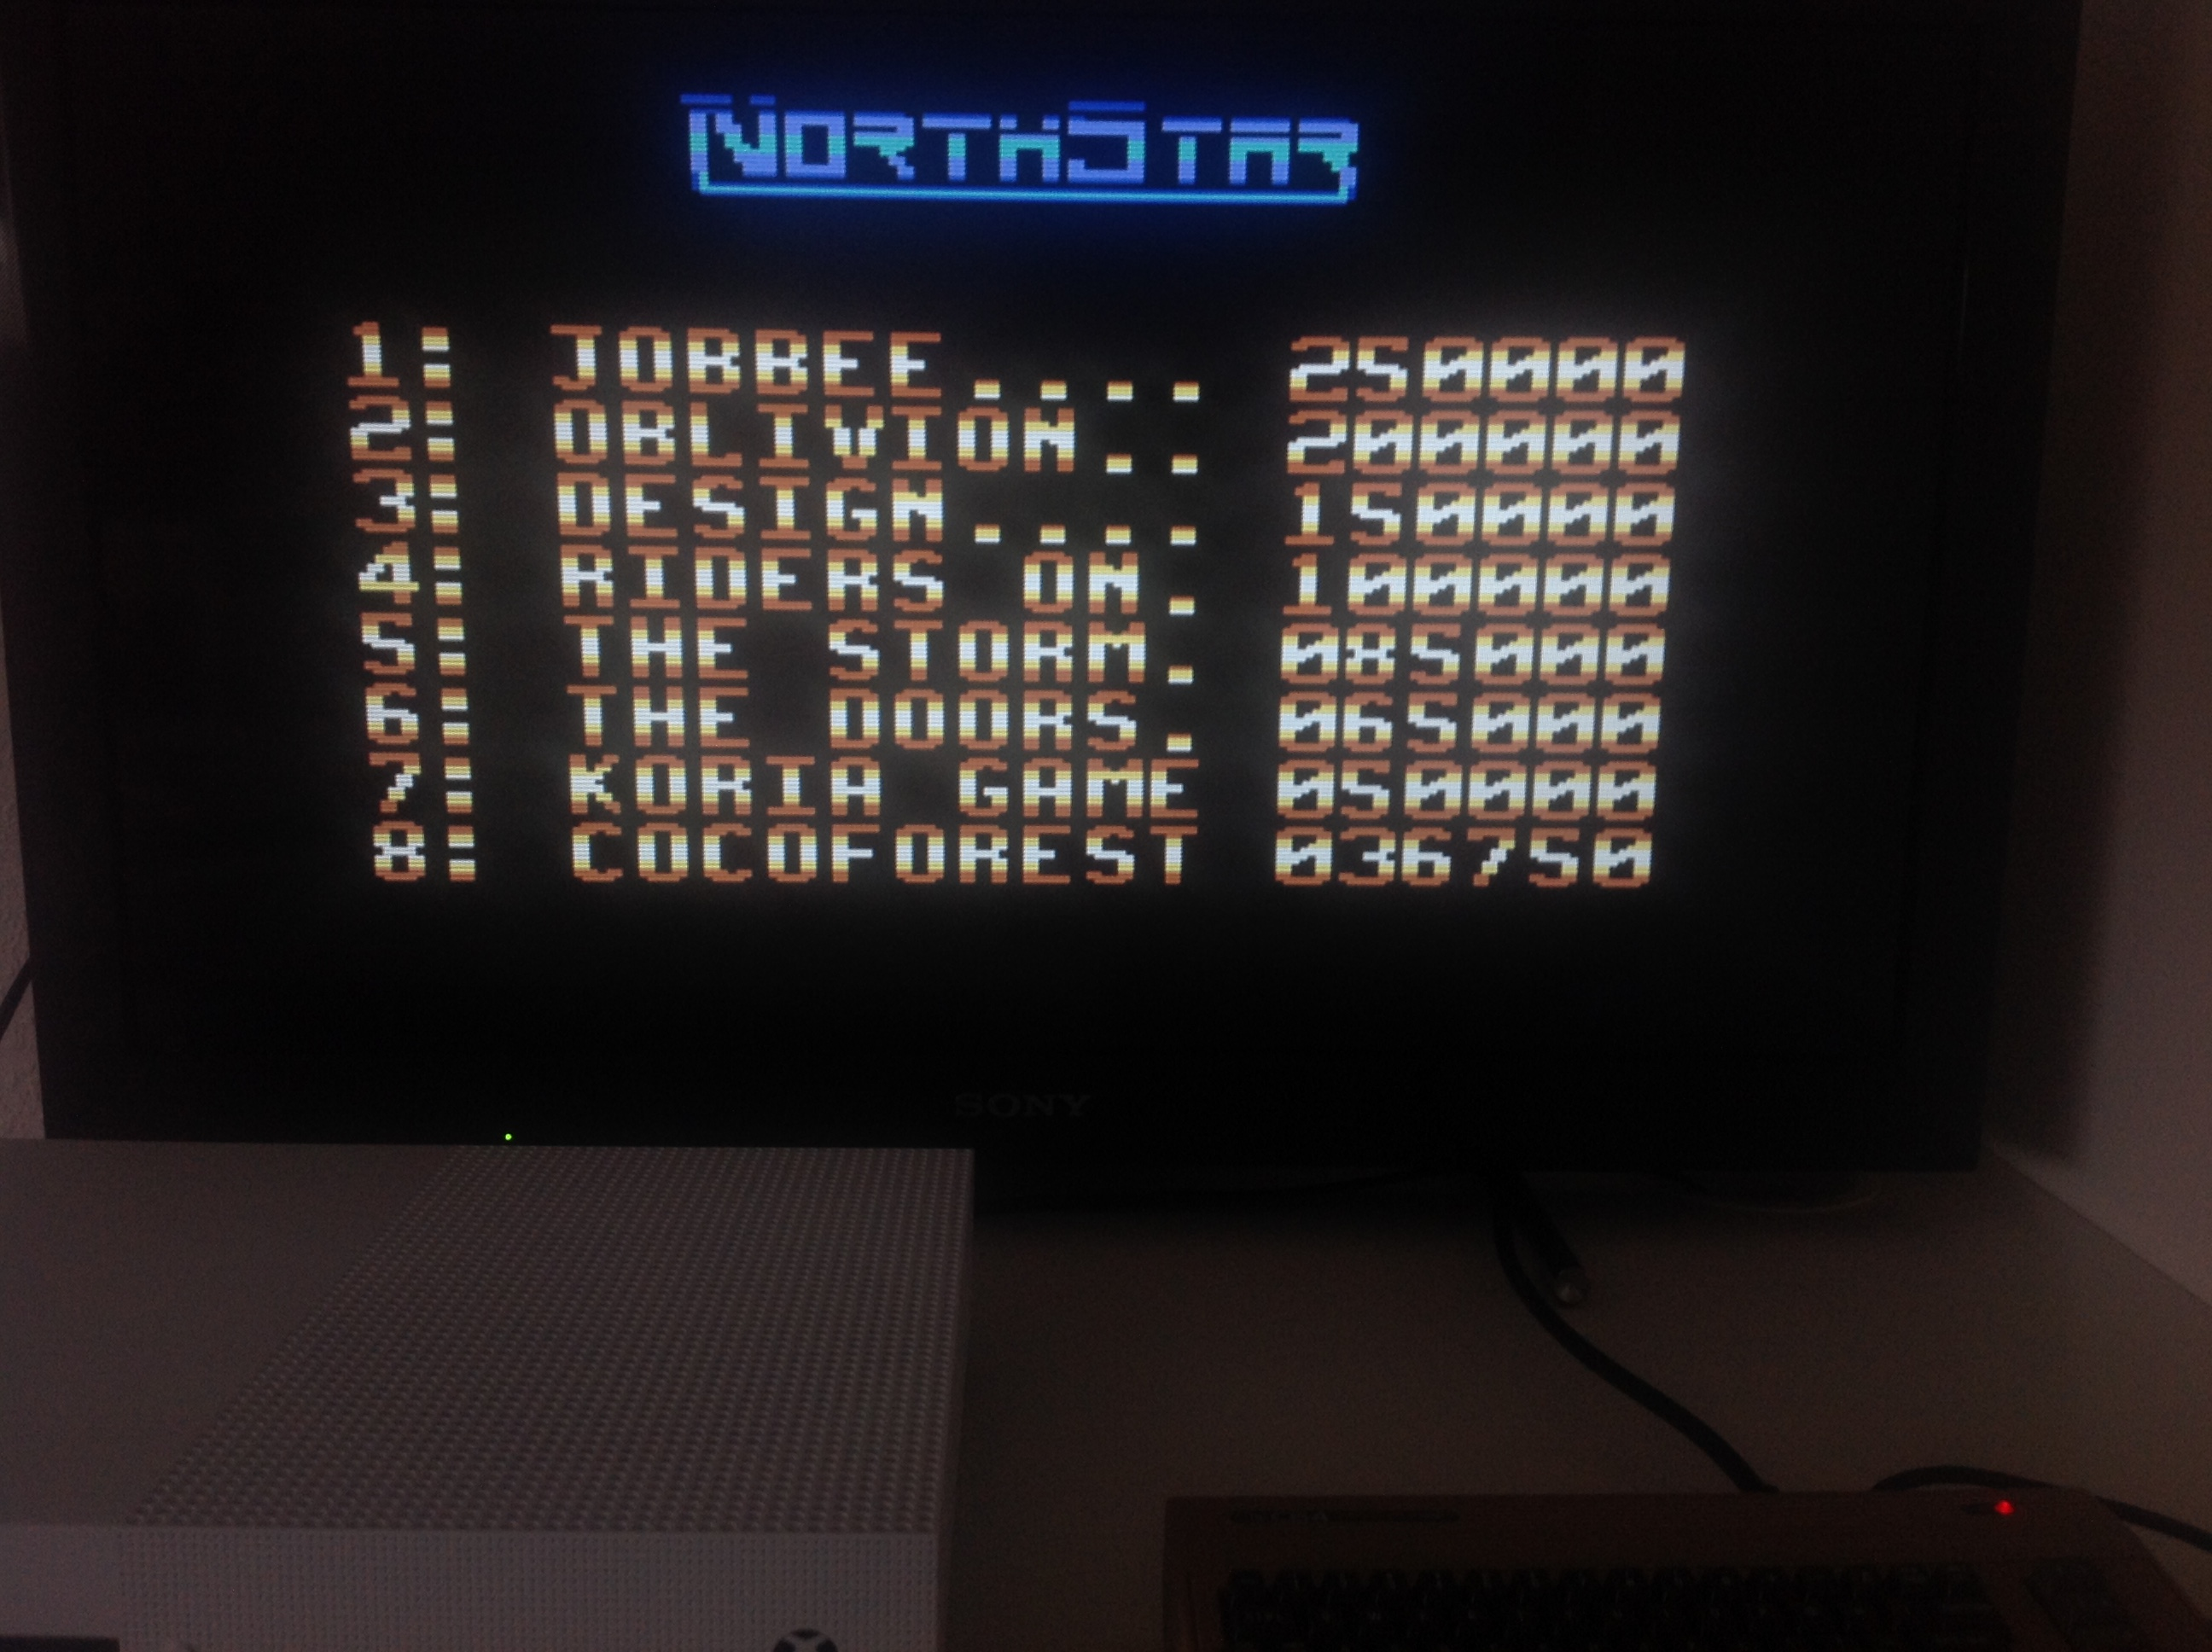 CoCoForest: Northstar (Commodore 64 Emulated) 36,750 points on 2018-04-20 03:29:00